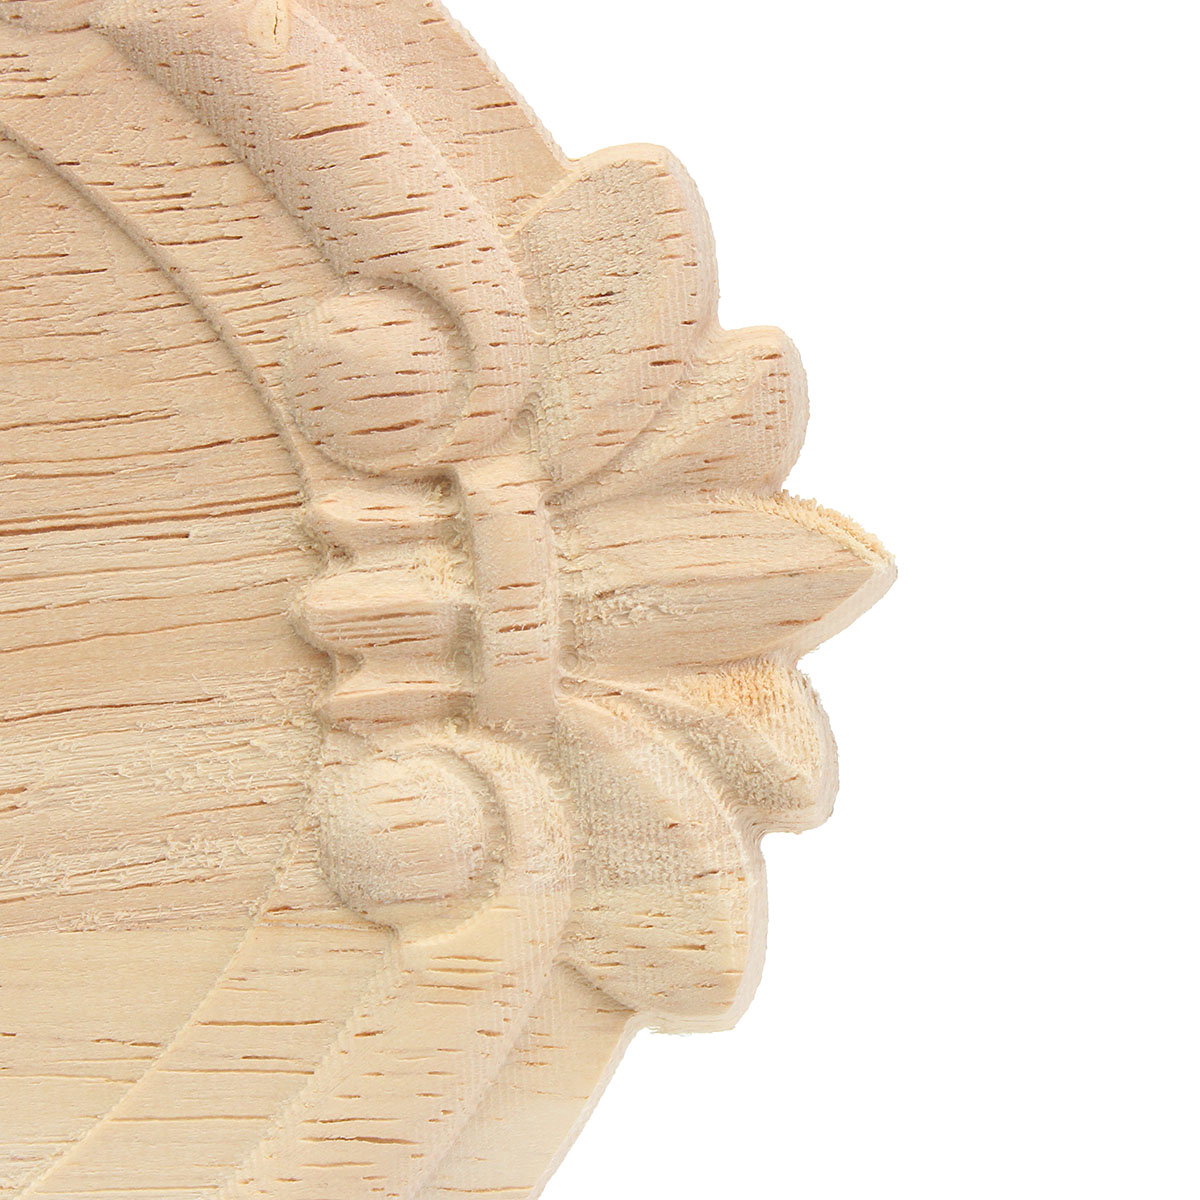 Wood Carving Applique Unpainted Flower Applique Wood Carving Decal 13x9cm 21x15cm